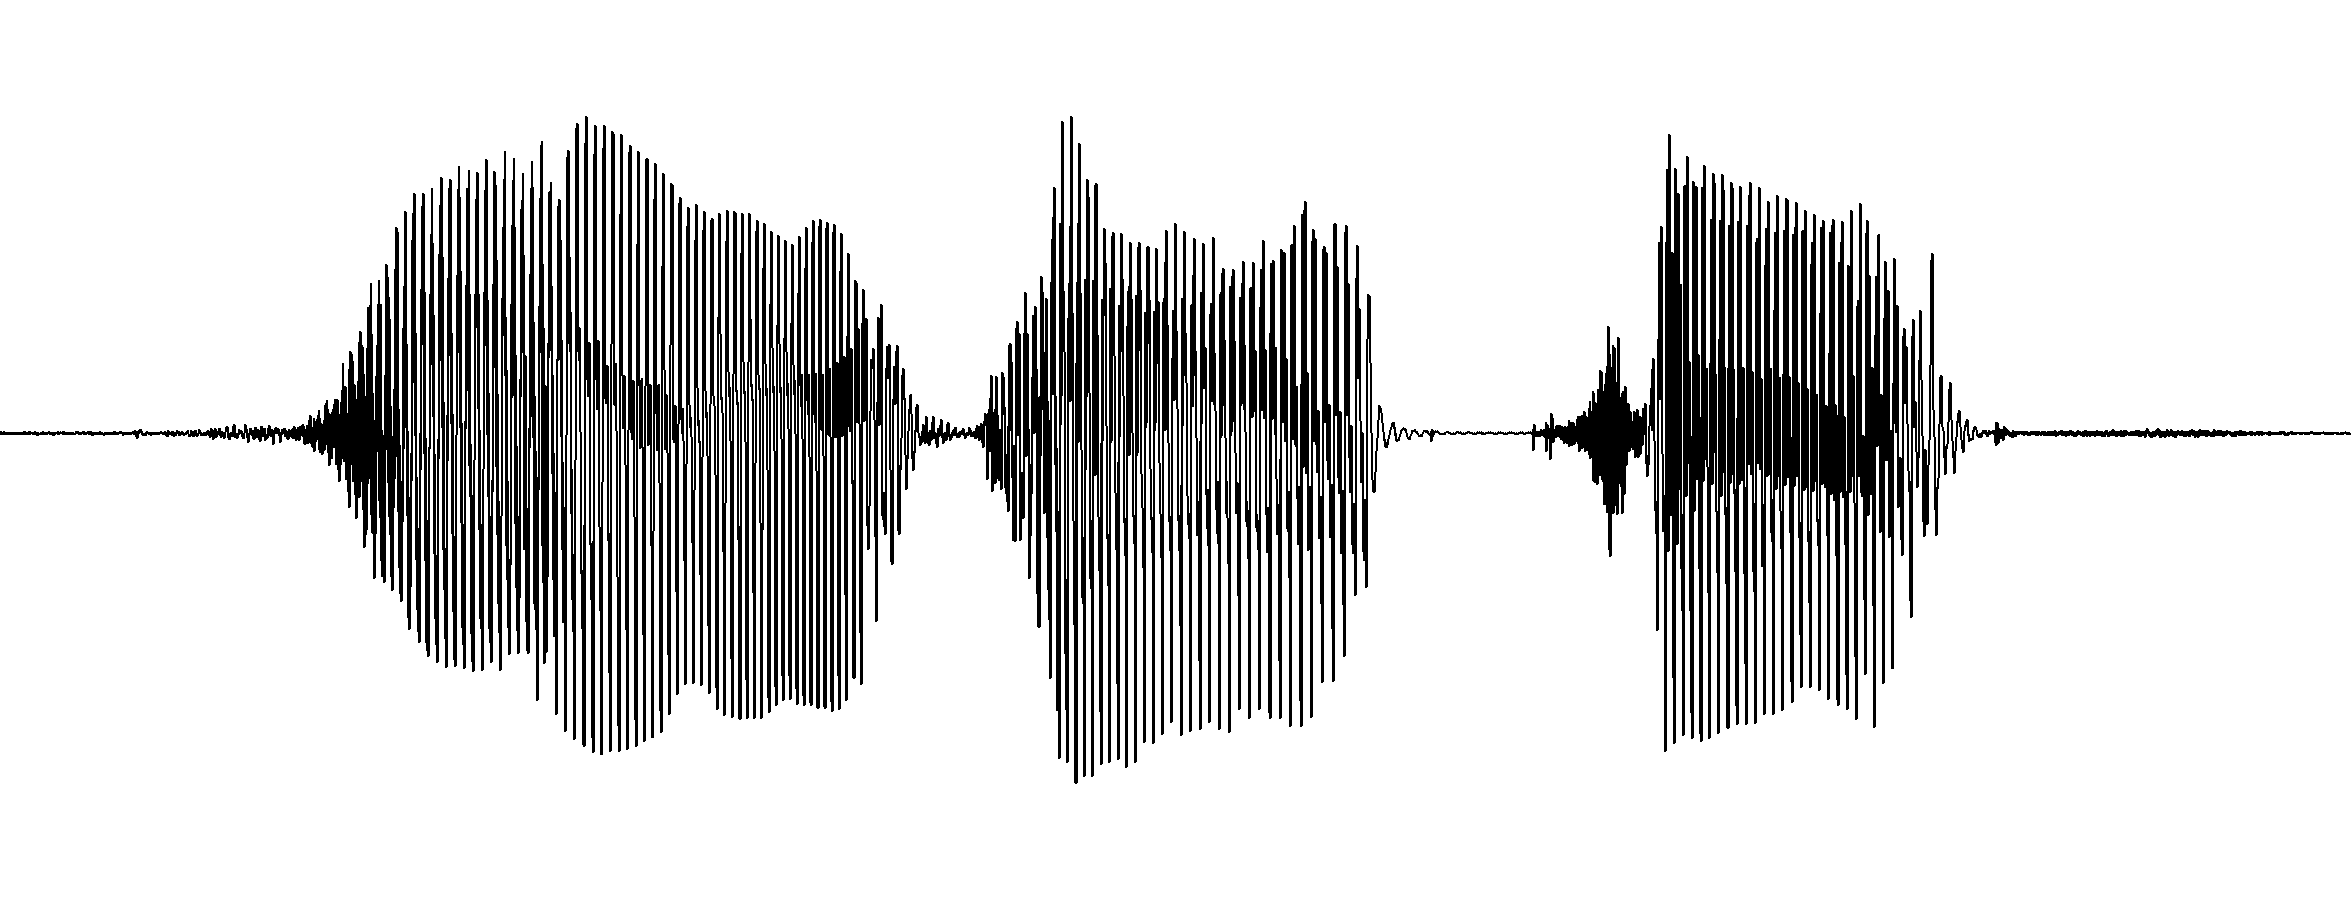 A waveform extracted from Praat of [zi.ɛl tso]